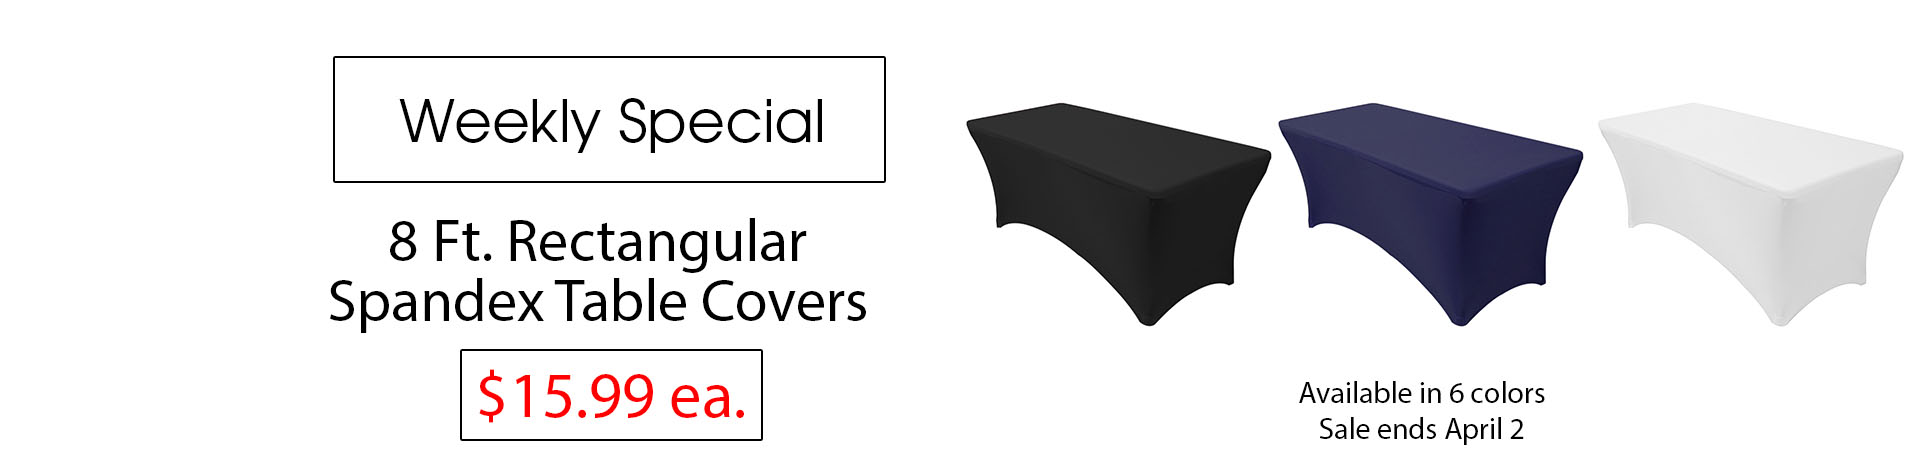 spandex table covers 8 ft rectangular